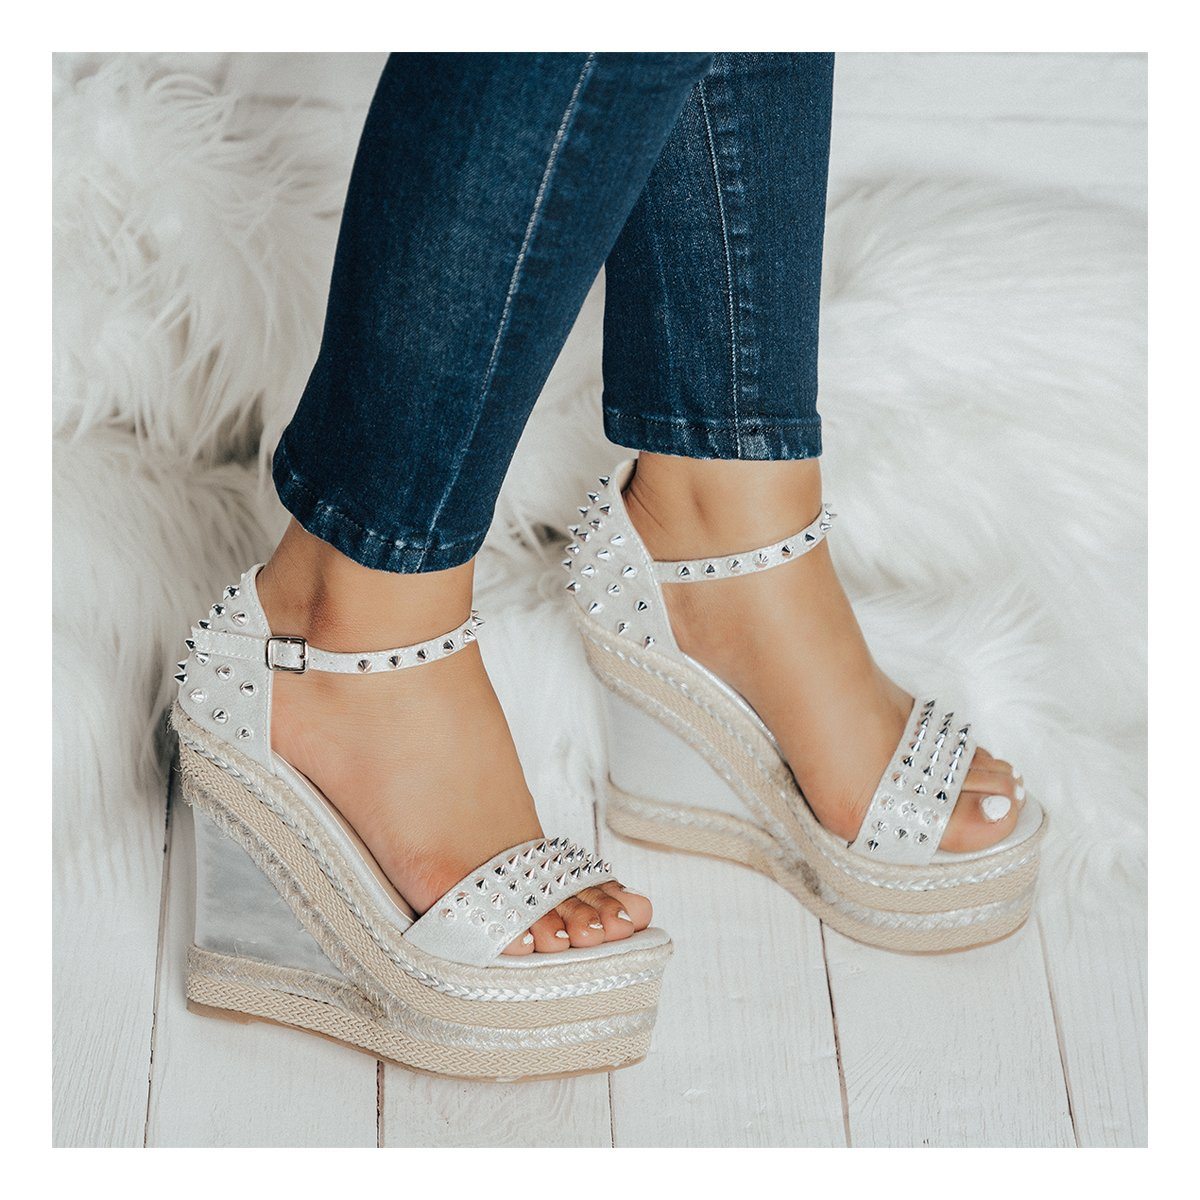 Women's Wedge Platform High Heels Sandal Rivet Ankle Strap Buckle Open Toe Sandals Weave Sole B07CYVQVRG 8.5 M US|Silver